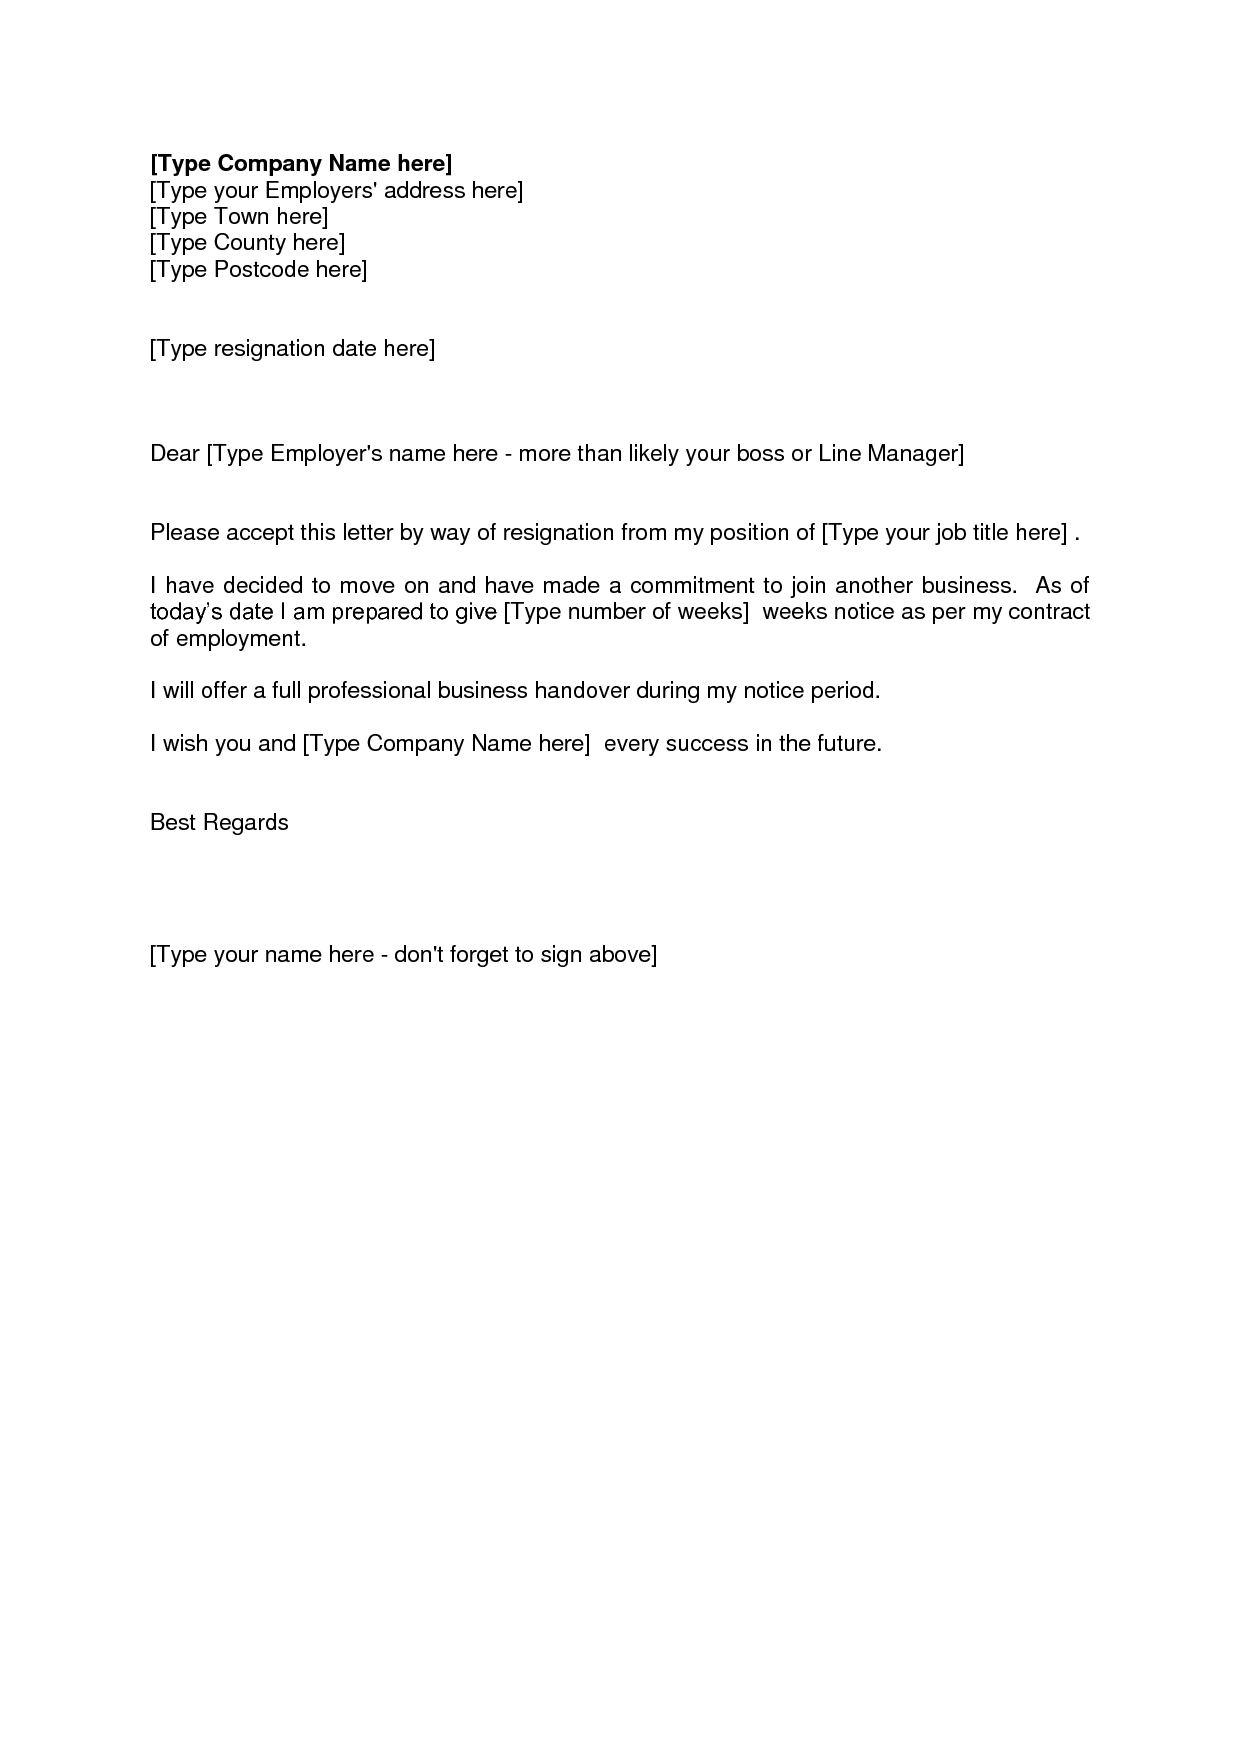 Letter Of Resignation Weeks Notice Template HDWriting A Letter Of Resignation Email Letter